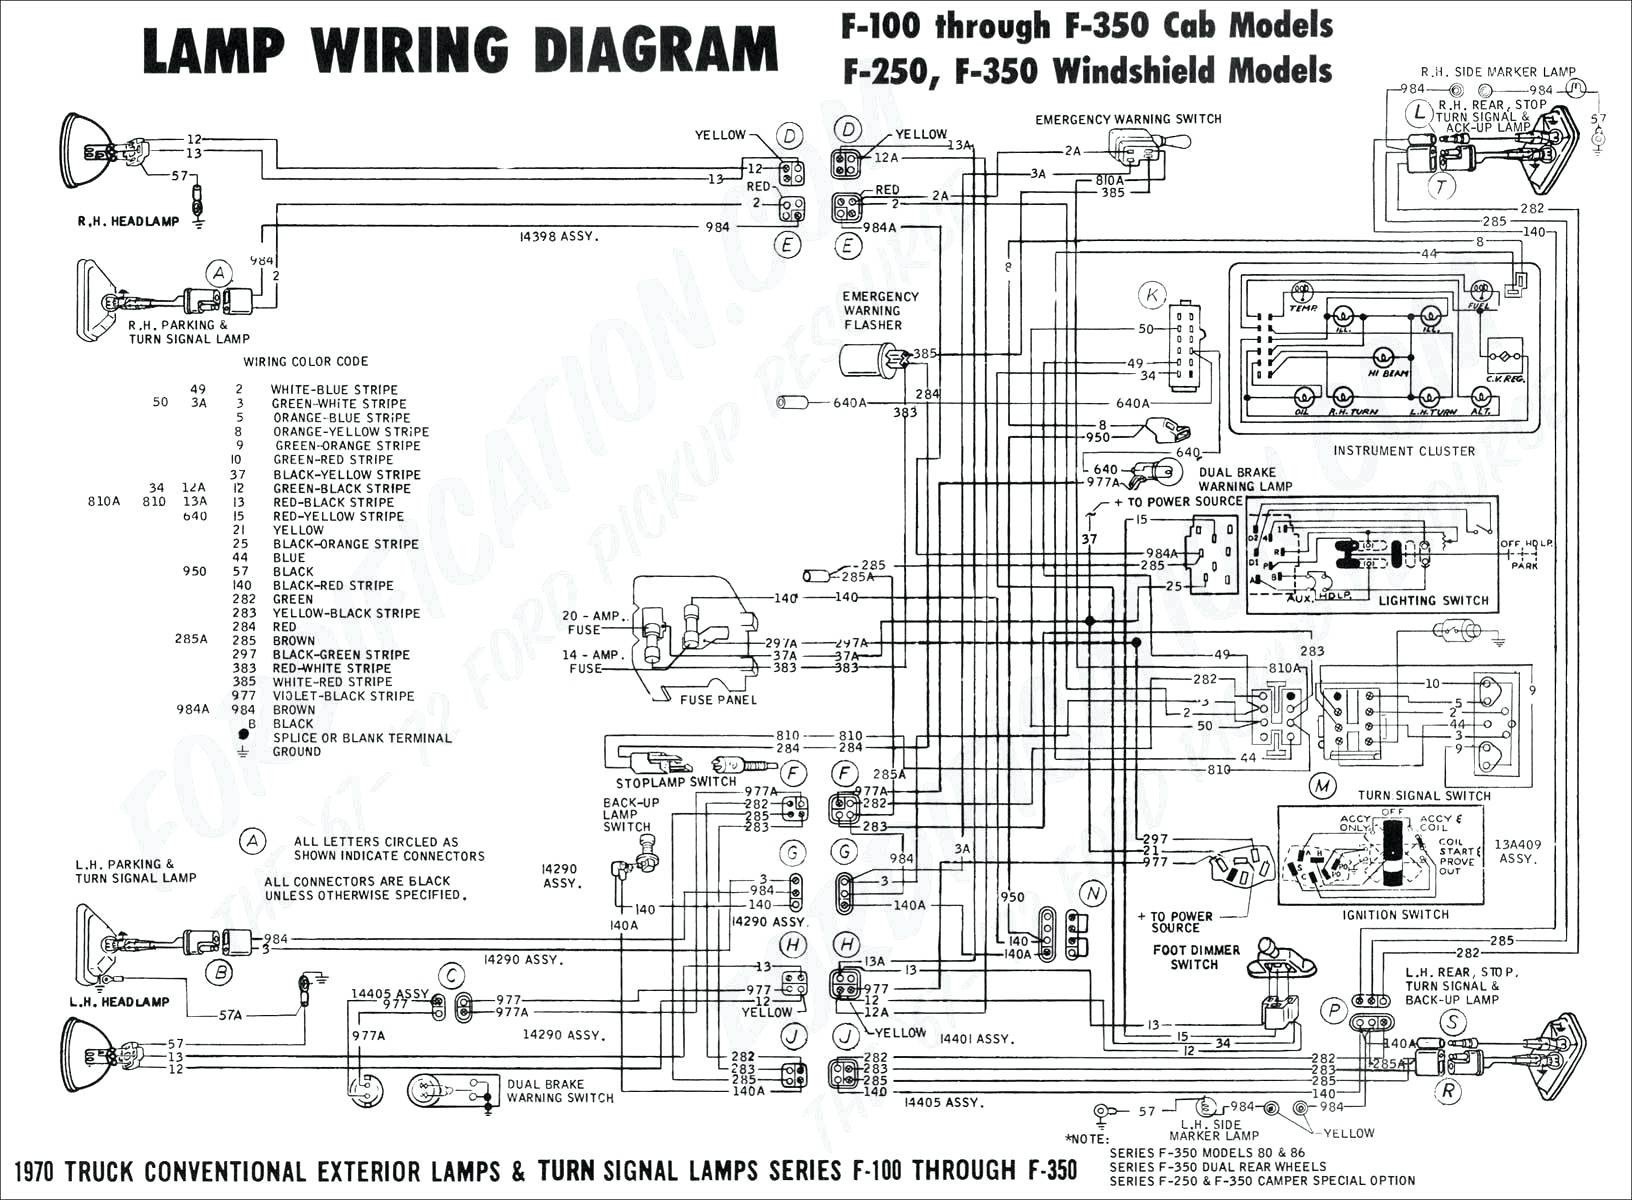 Get 2001 Ford F250 Trailer Wiring Diagram Sample - 01 F350 Trailer Wiring Diagram